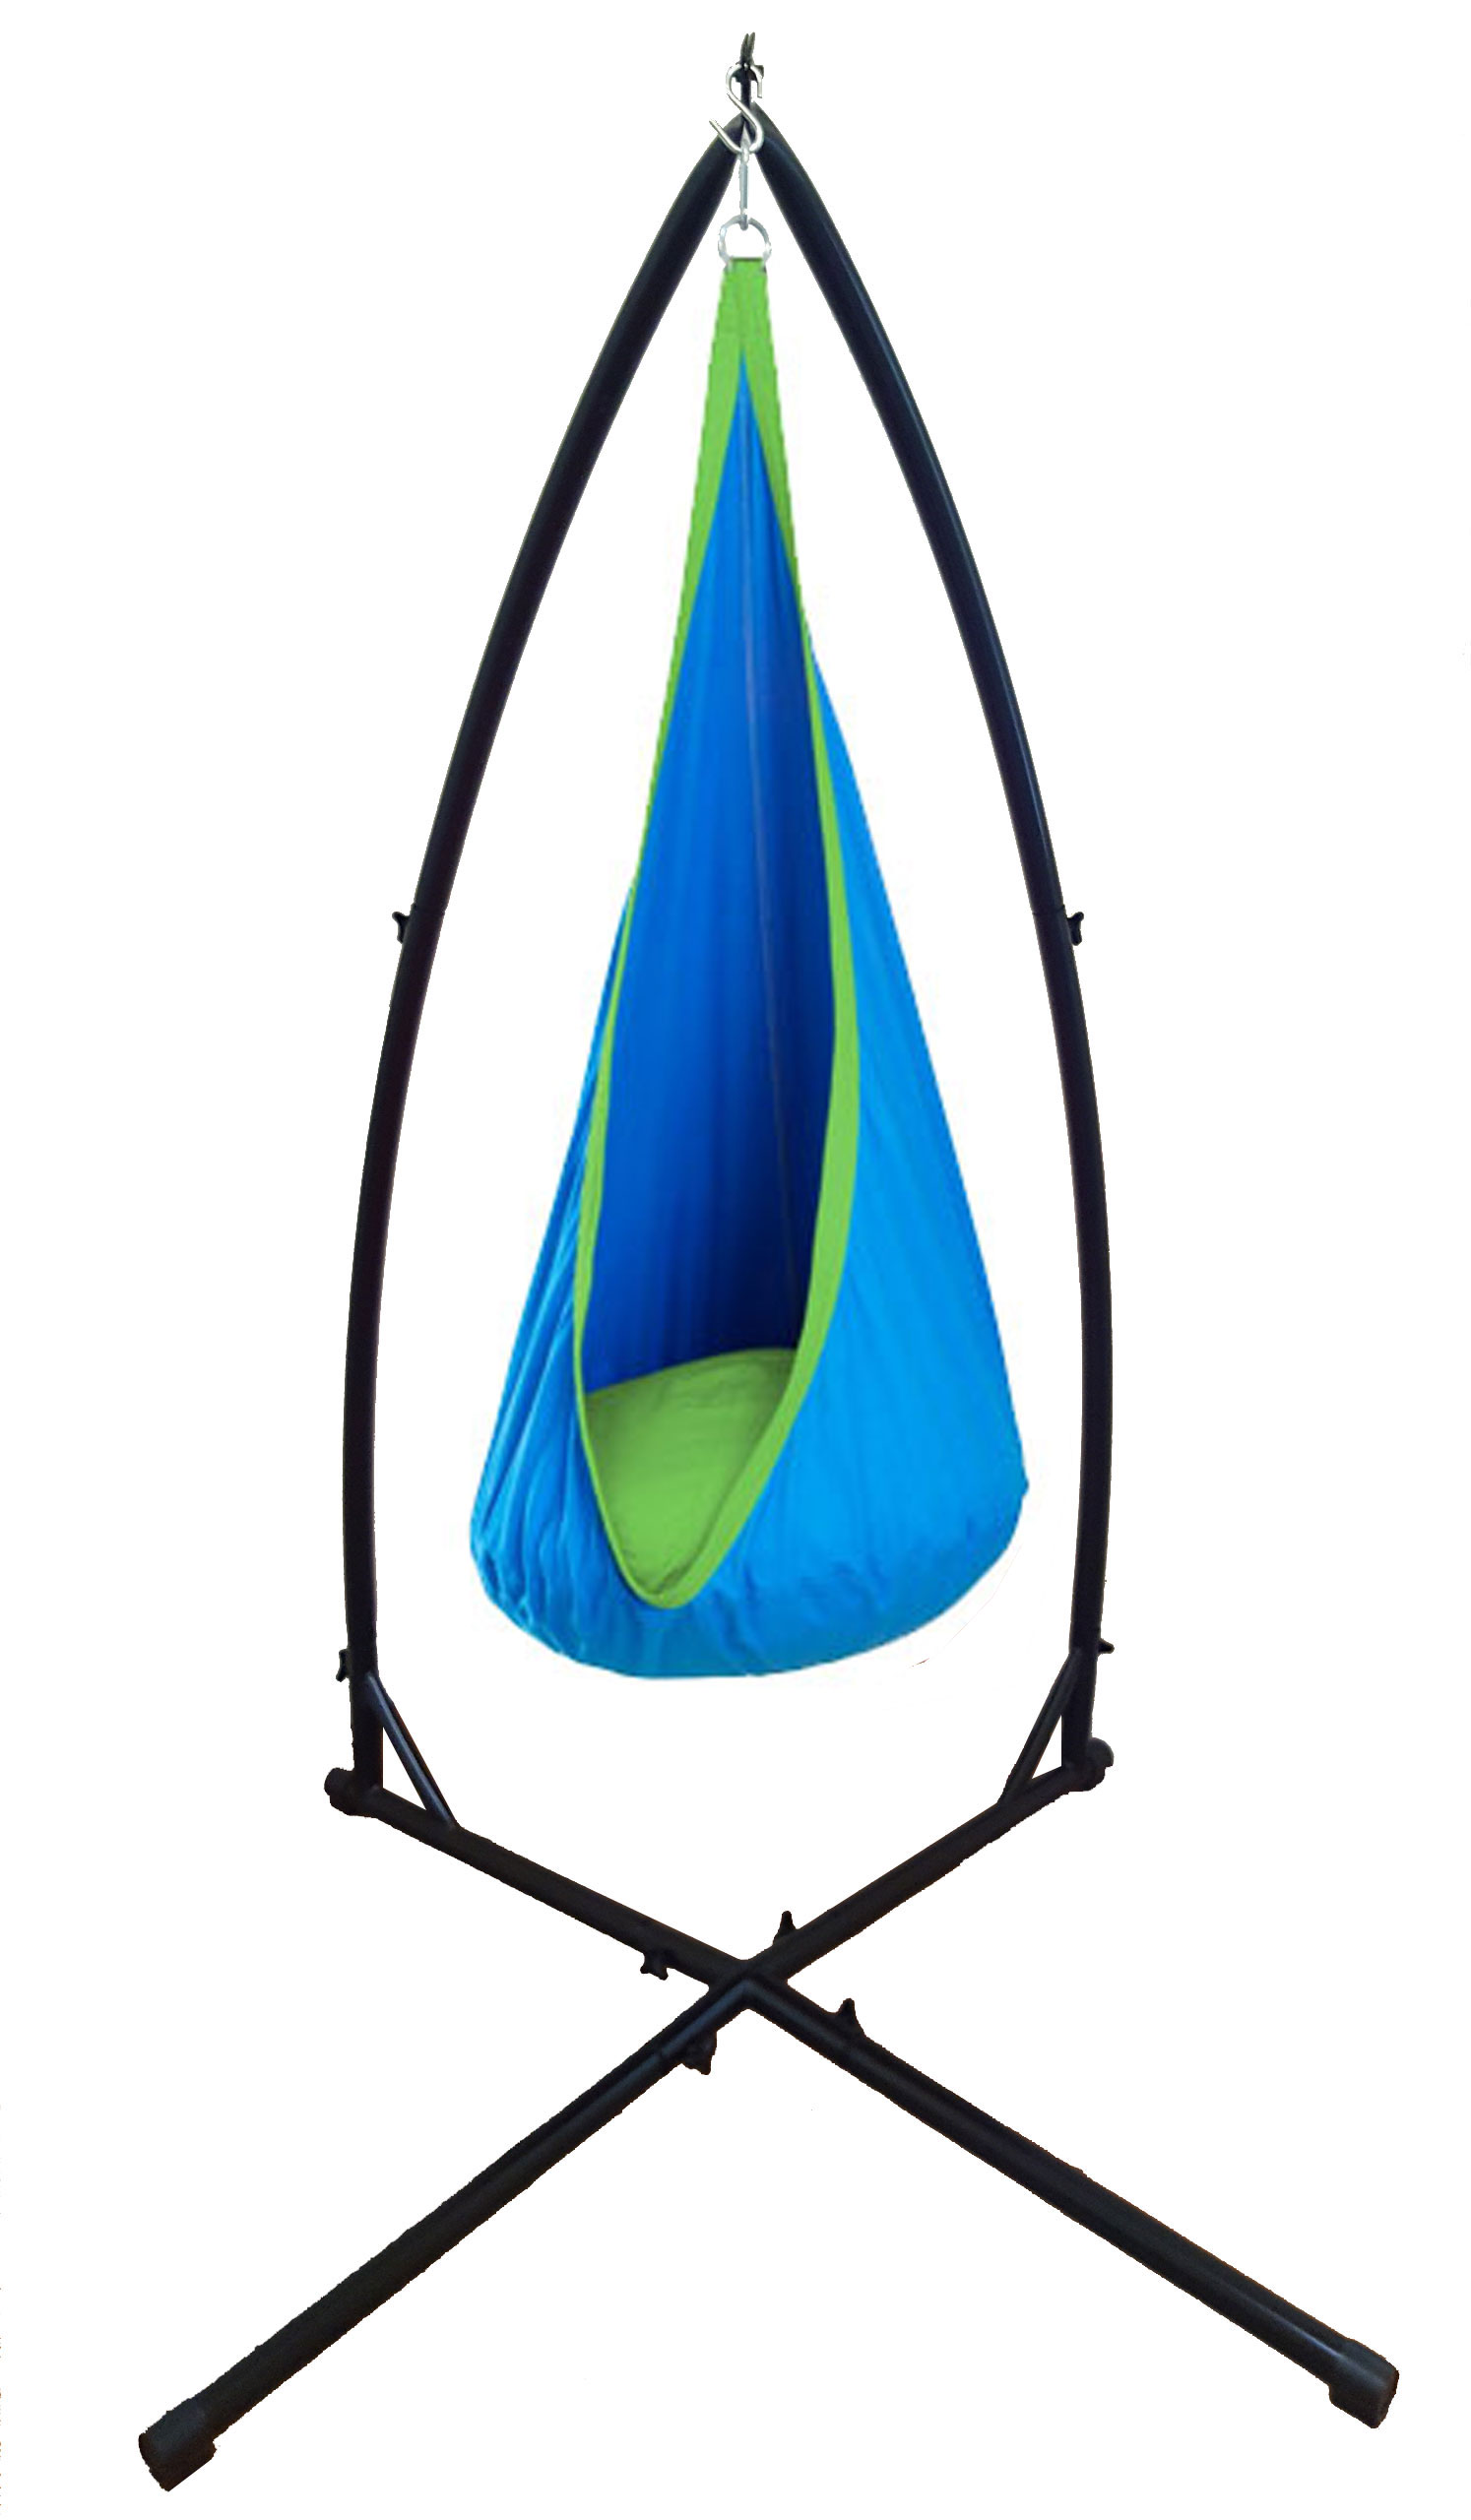 Blue And Green Waterproof Sensory Swing With Stand